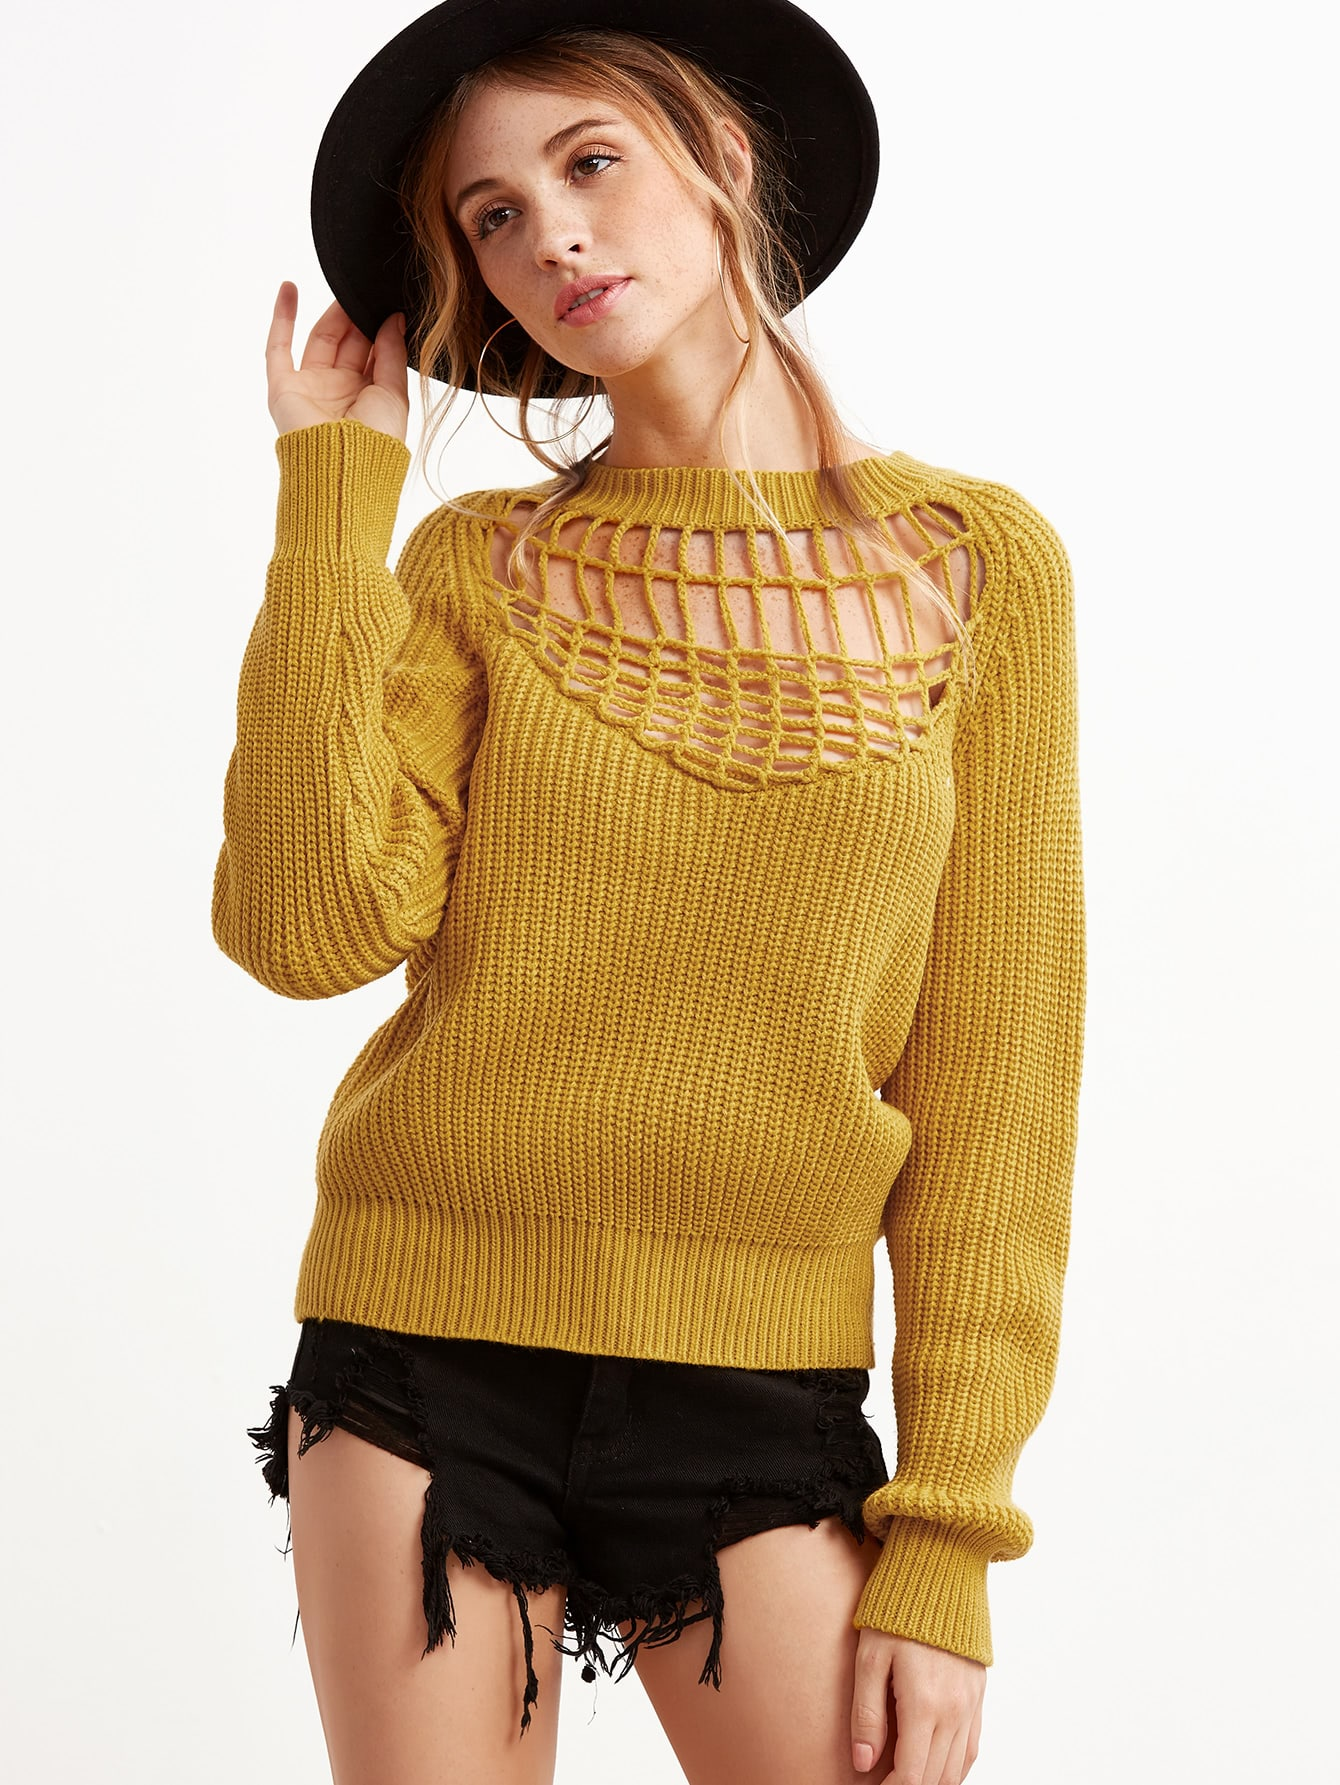 Mustard Hollow Out Ribbed Knit Pullover Sweater sweater160920403